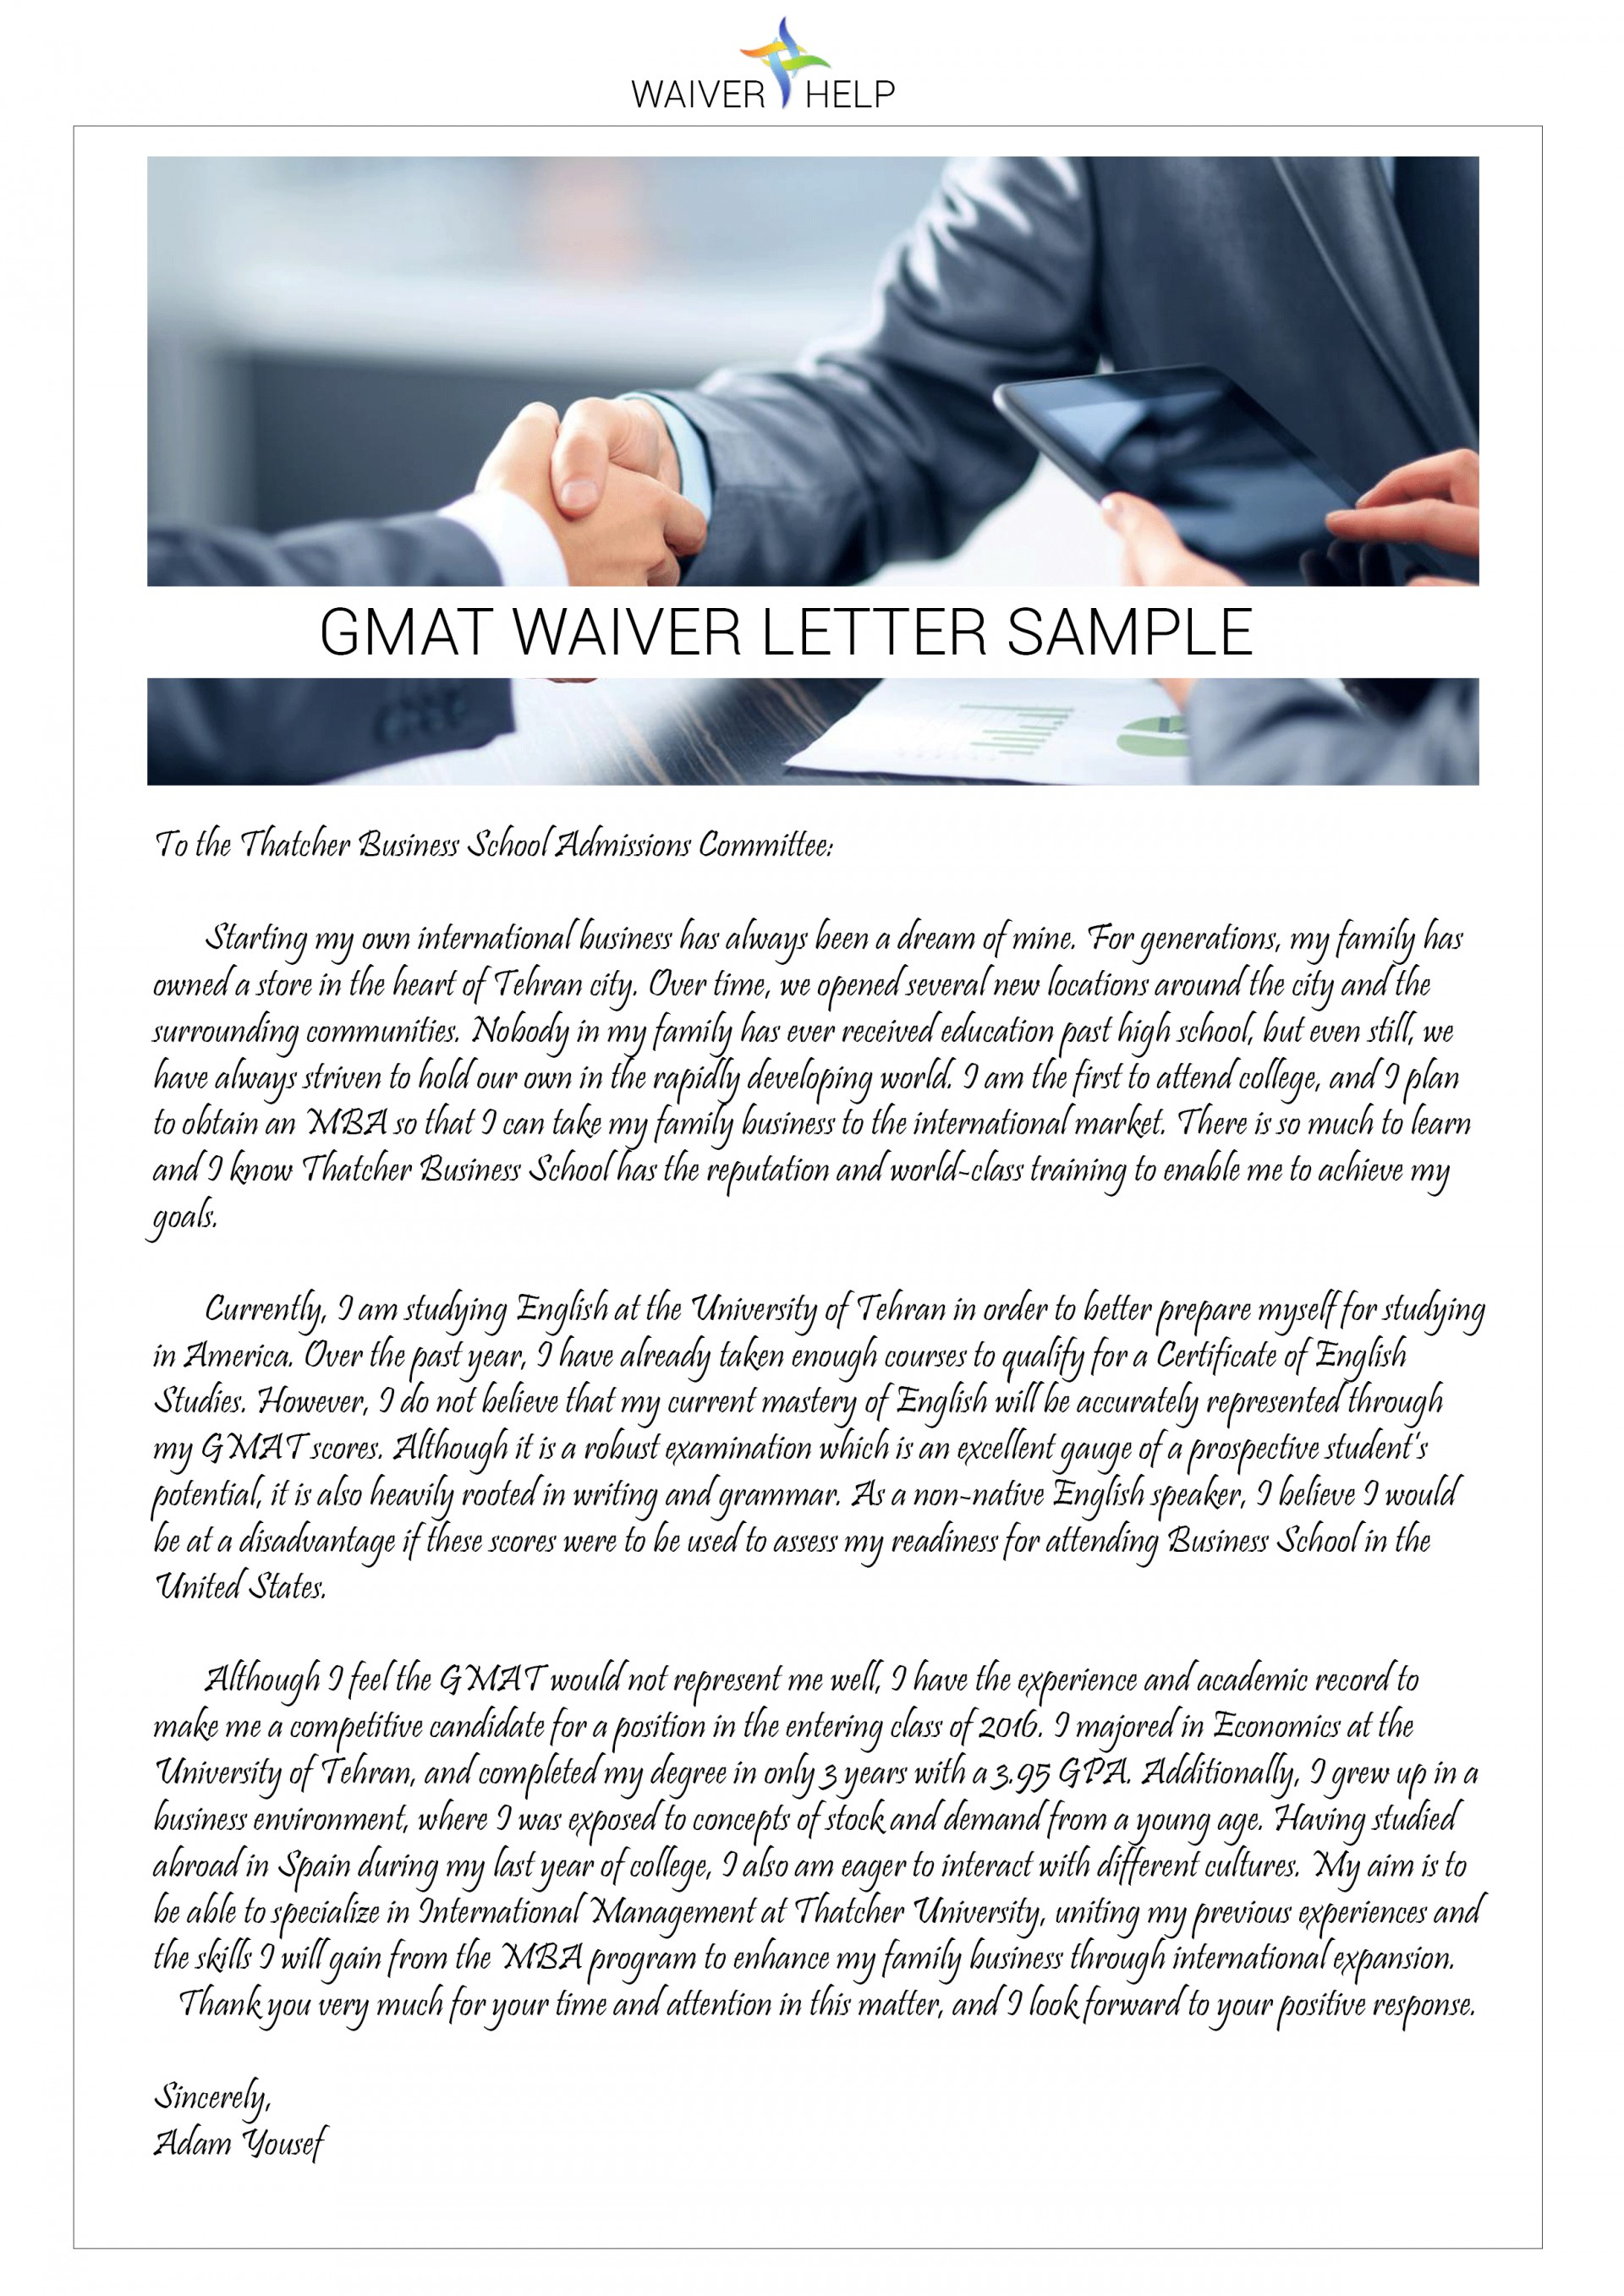 009 Gmat Essay Example Awesome Sample Gre Essays Resume Daily L Astounding Pdf Awa Score 4.5 1920